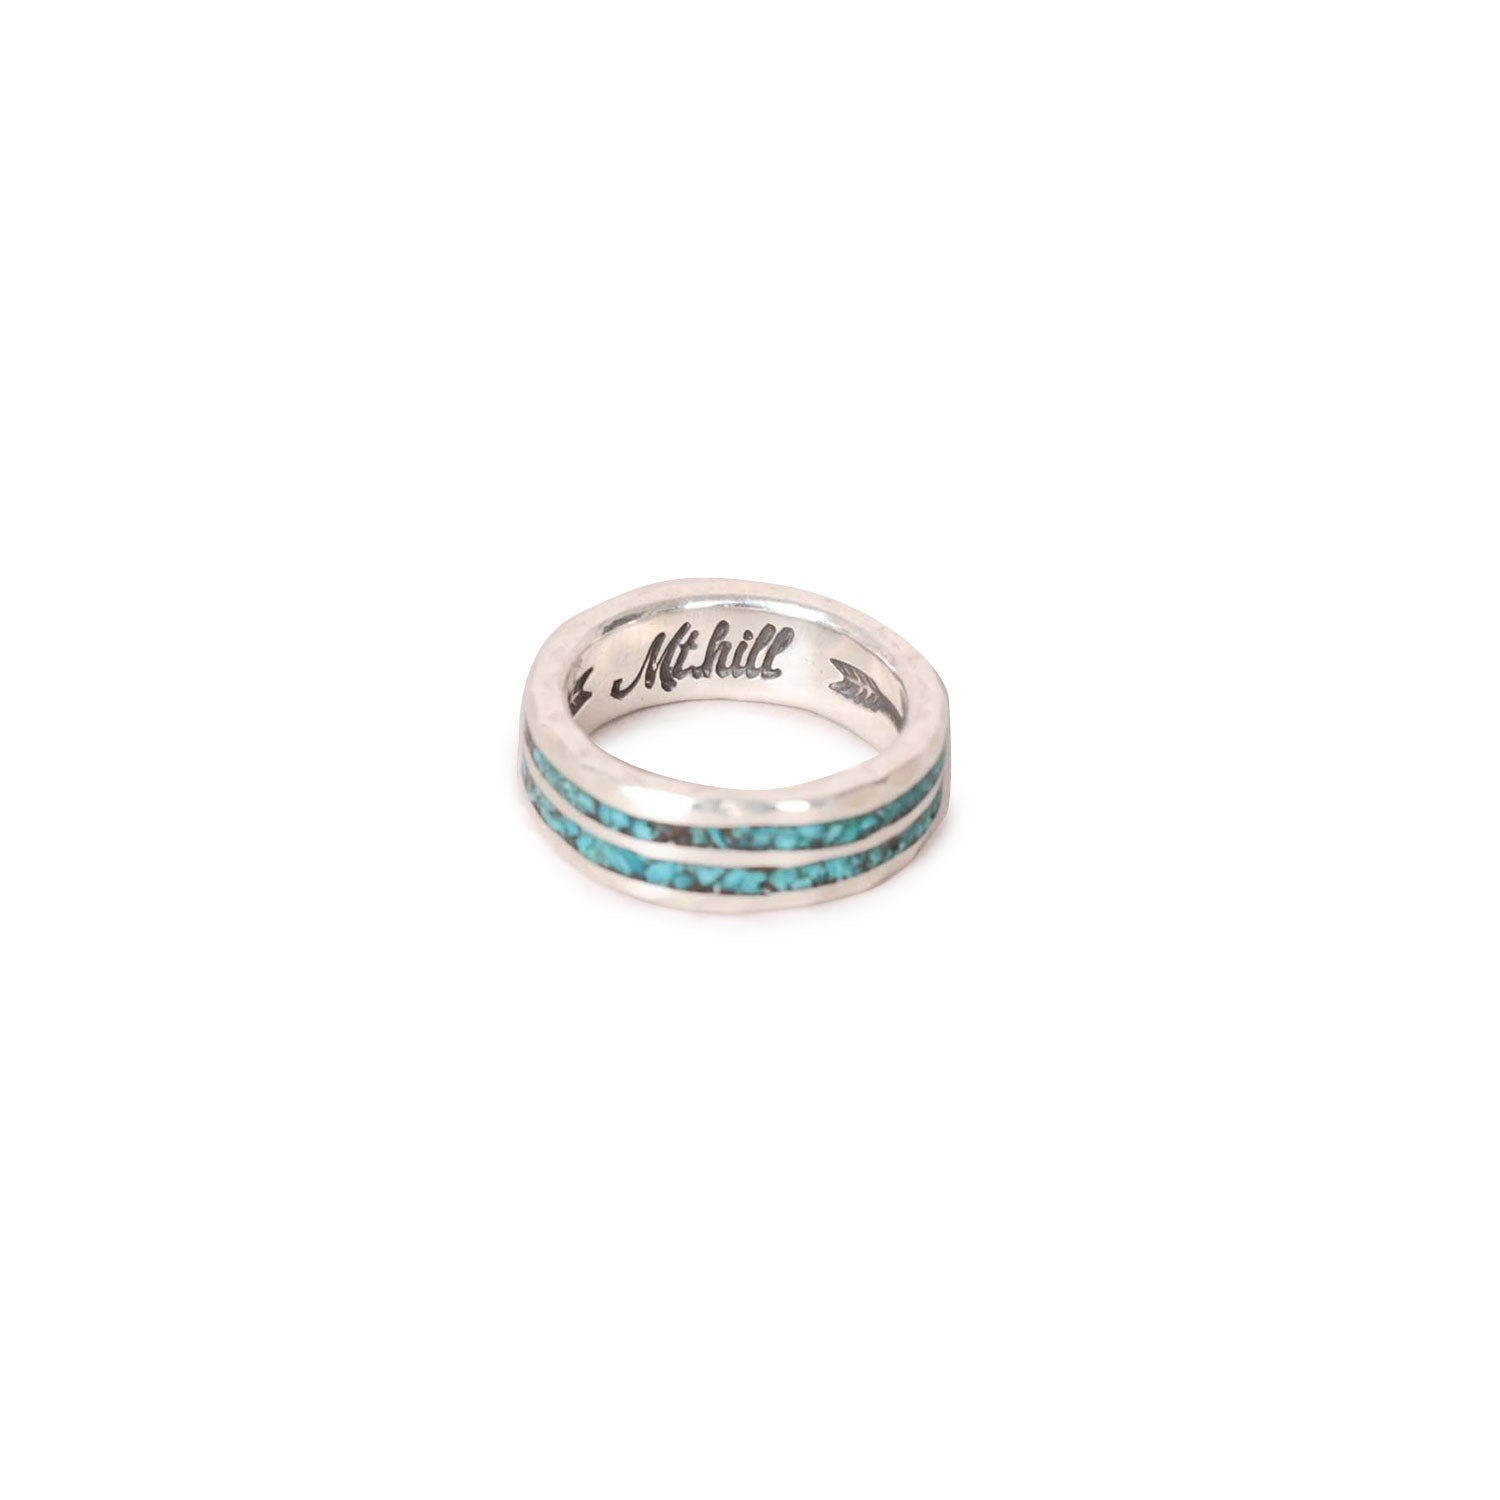 c135ce6dfa349c Mt. Hill | Sterling Silver Turquoise Inlay Ring Narrow - Snake Oil ...